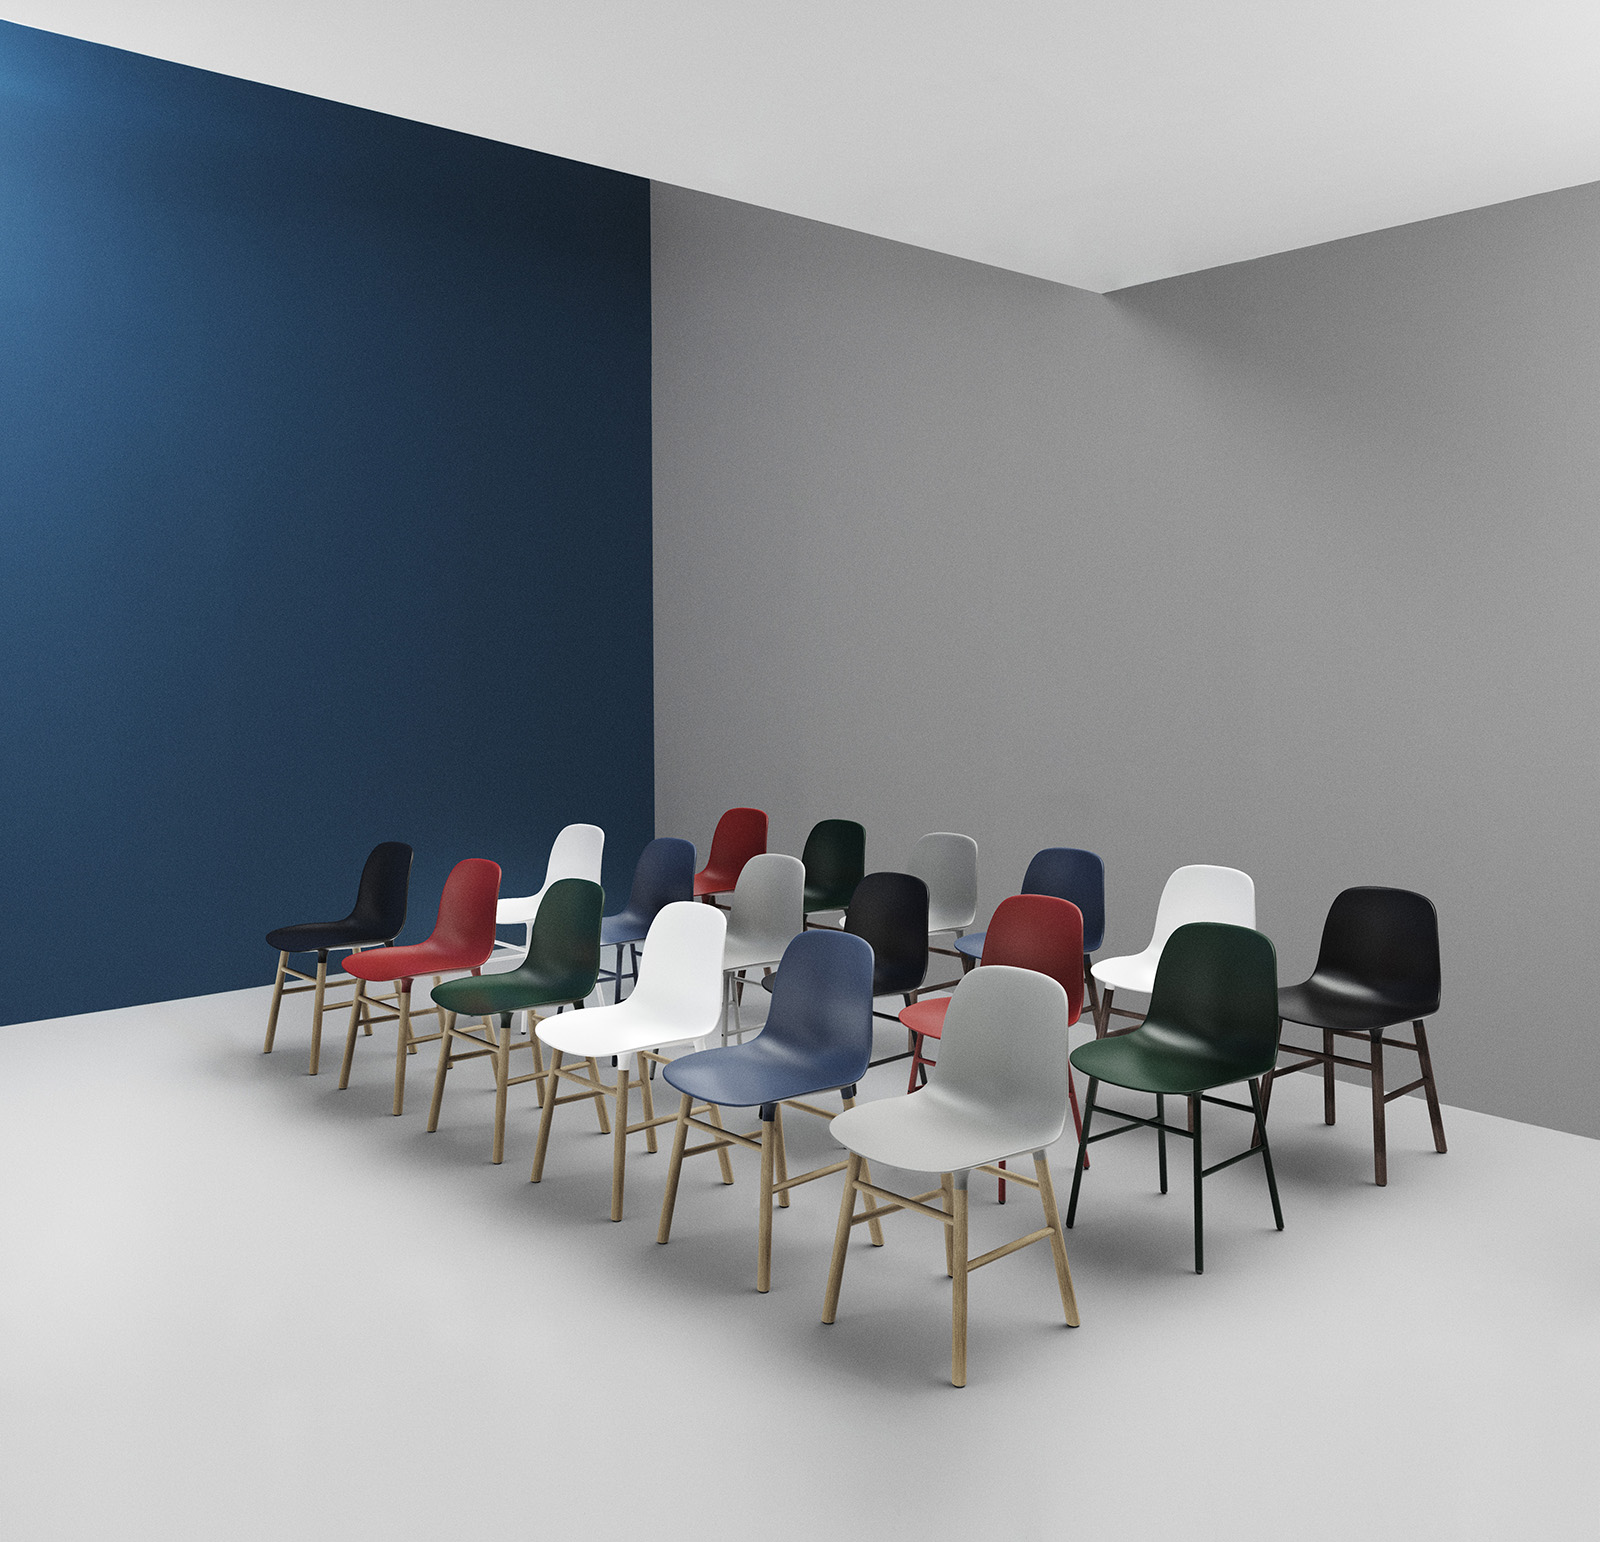 6028_Form_Chair_ALL_In_Room